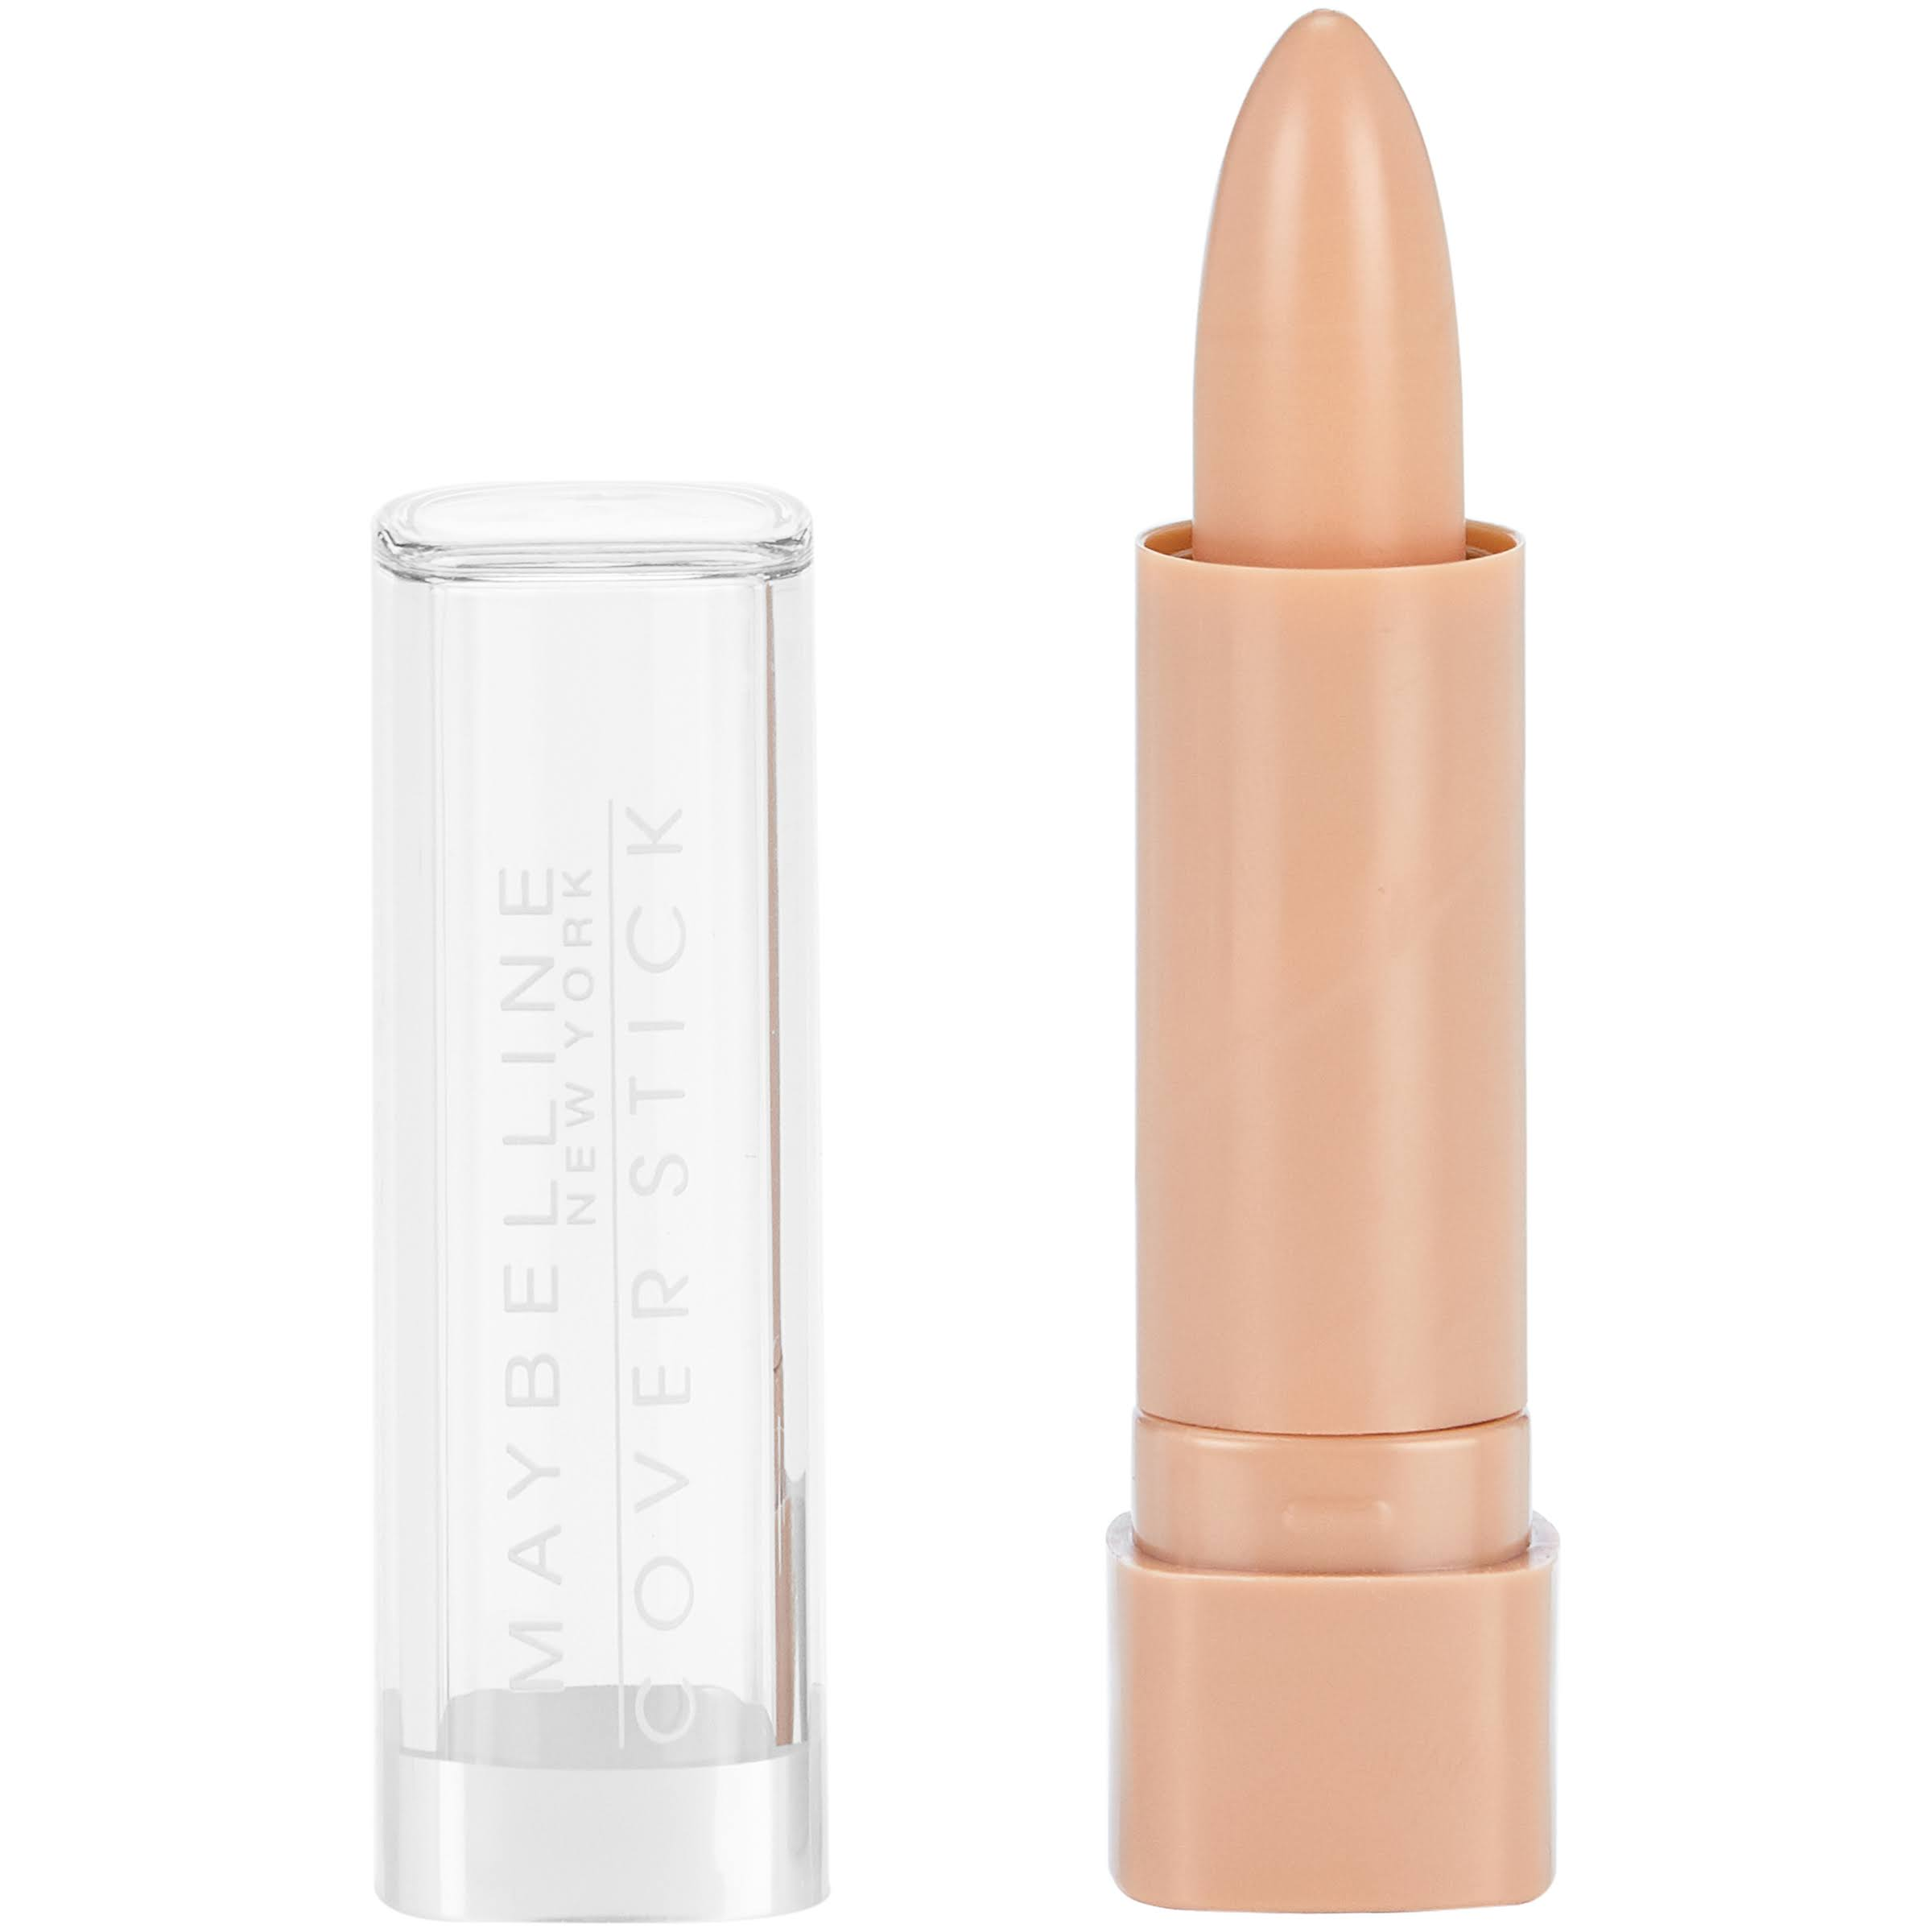 Maybelline New York Cover Stick Concealer - Medium Beige, 0.16oz